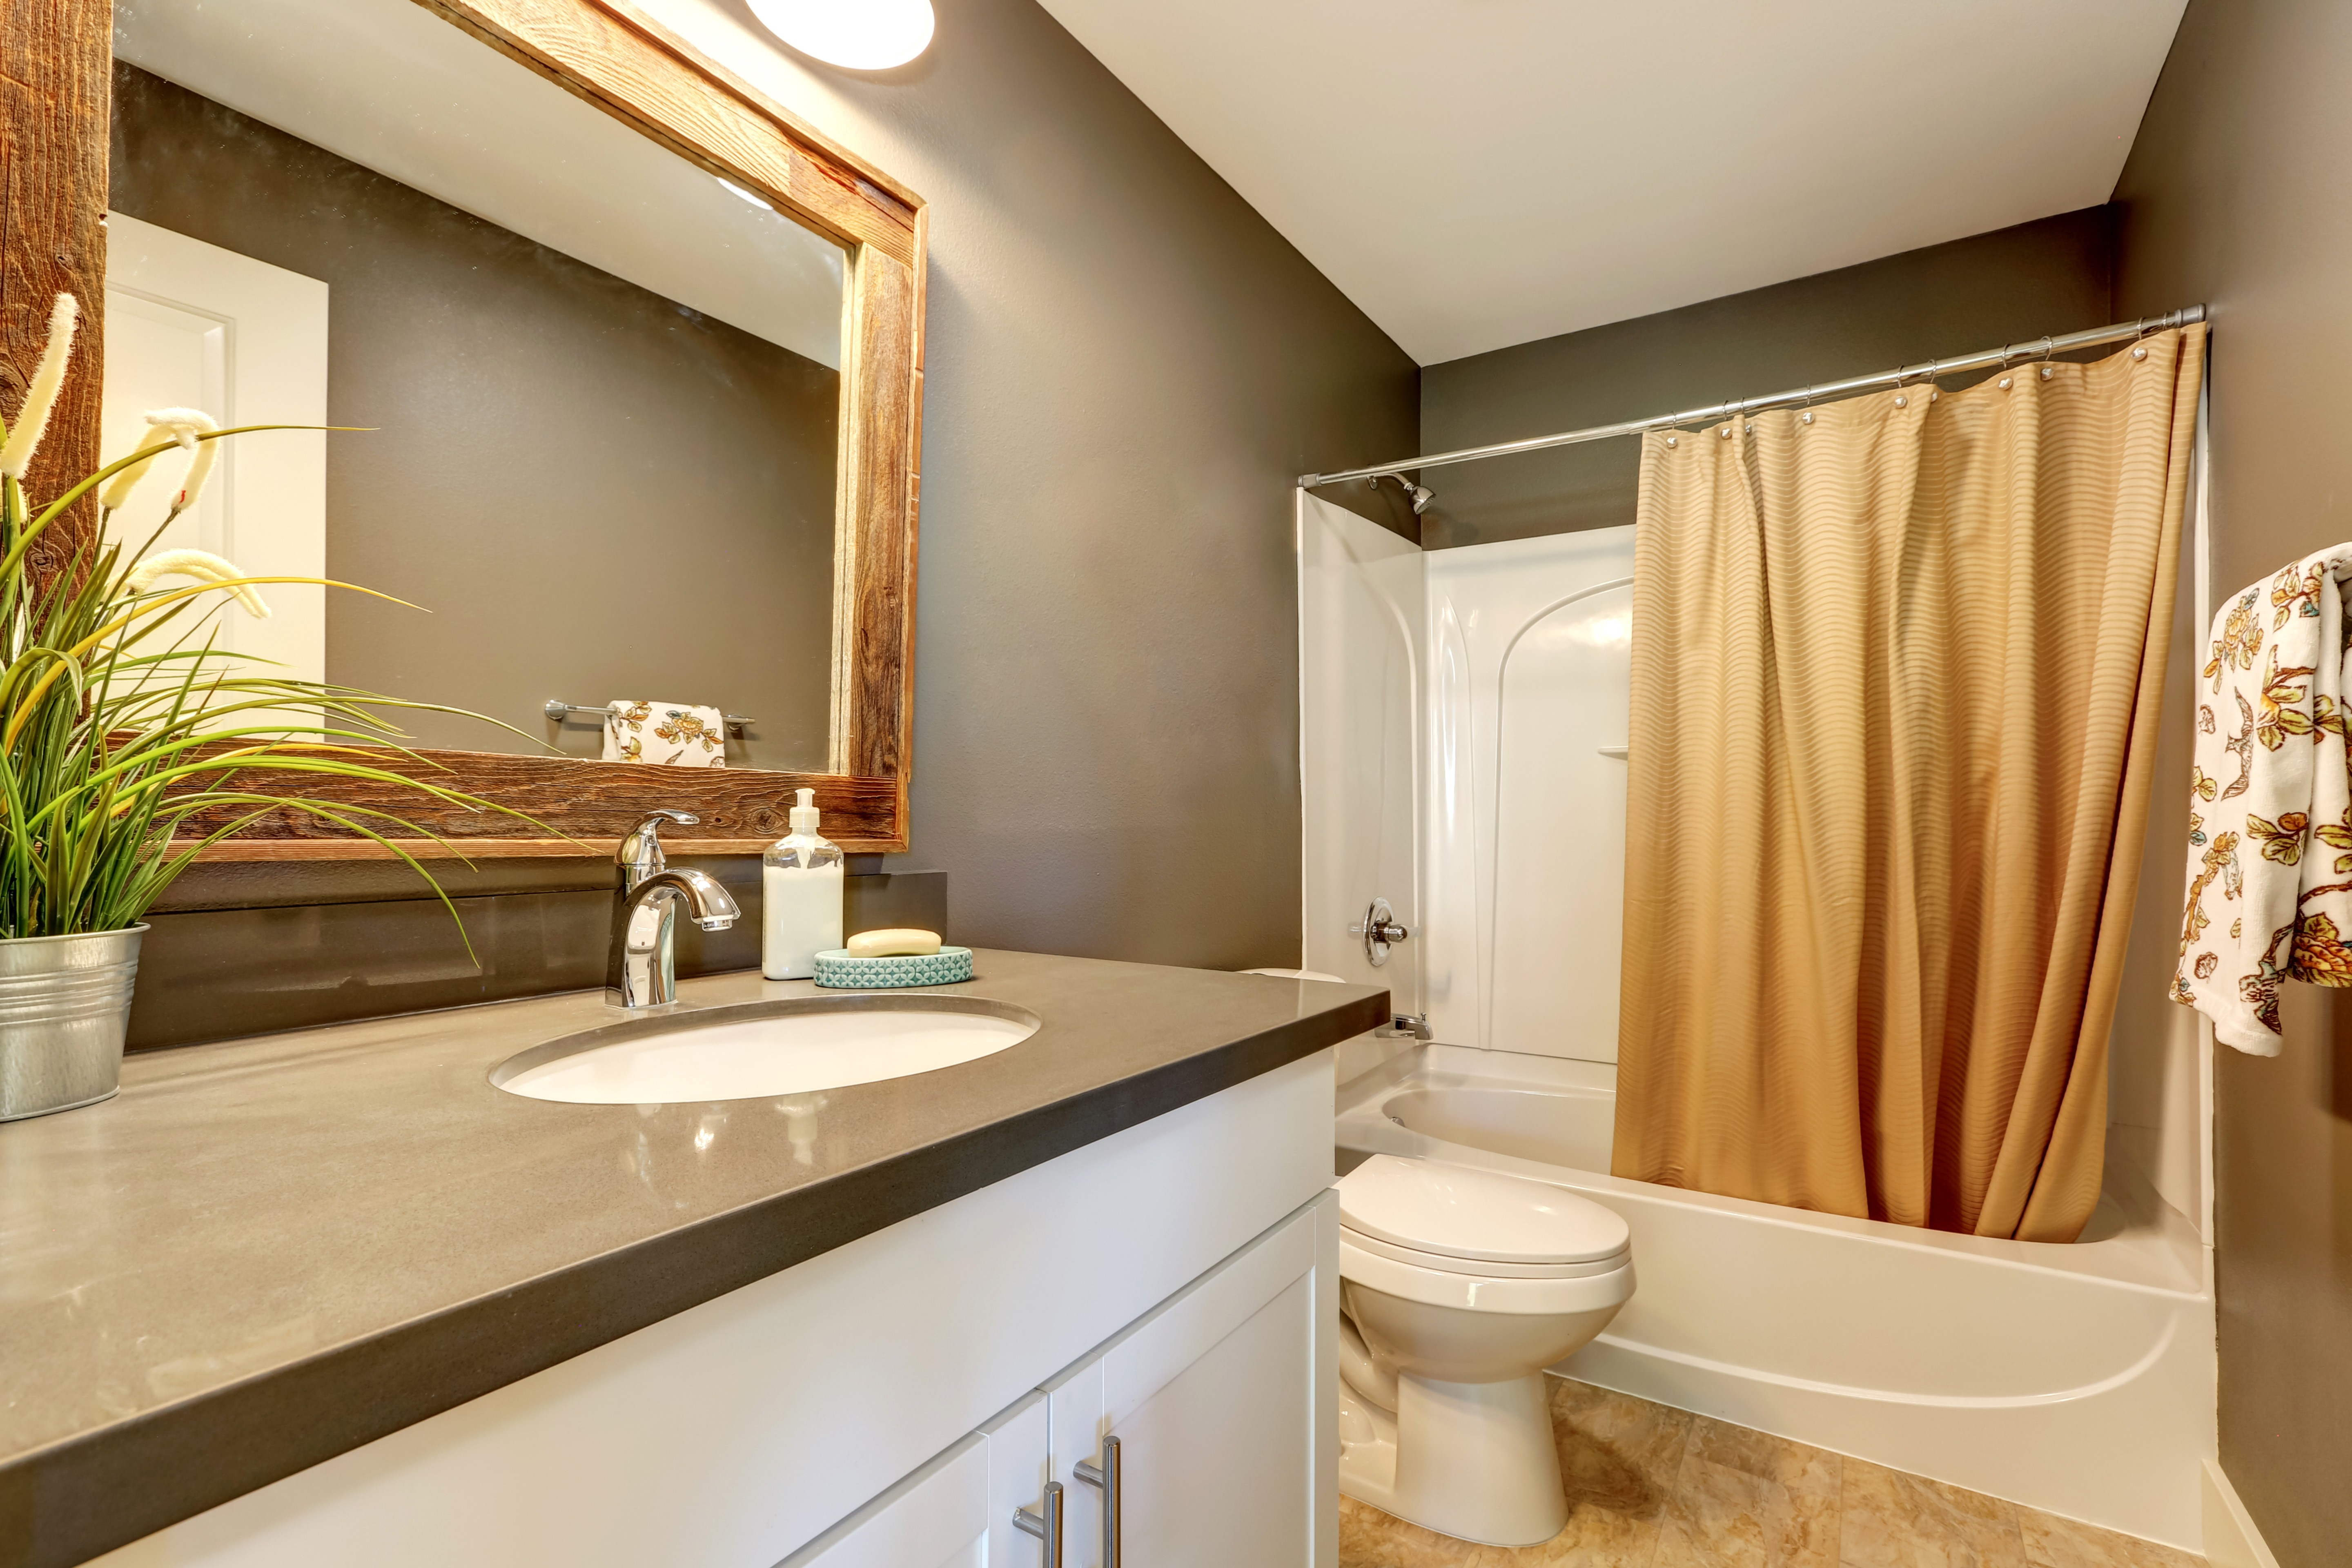 Affordable Bathroom Upgrades For New Homeowners